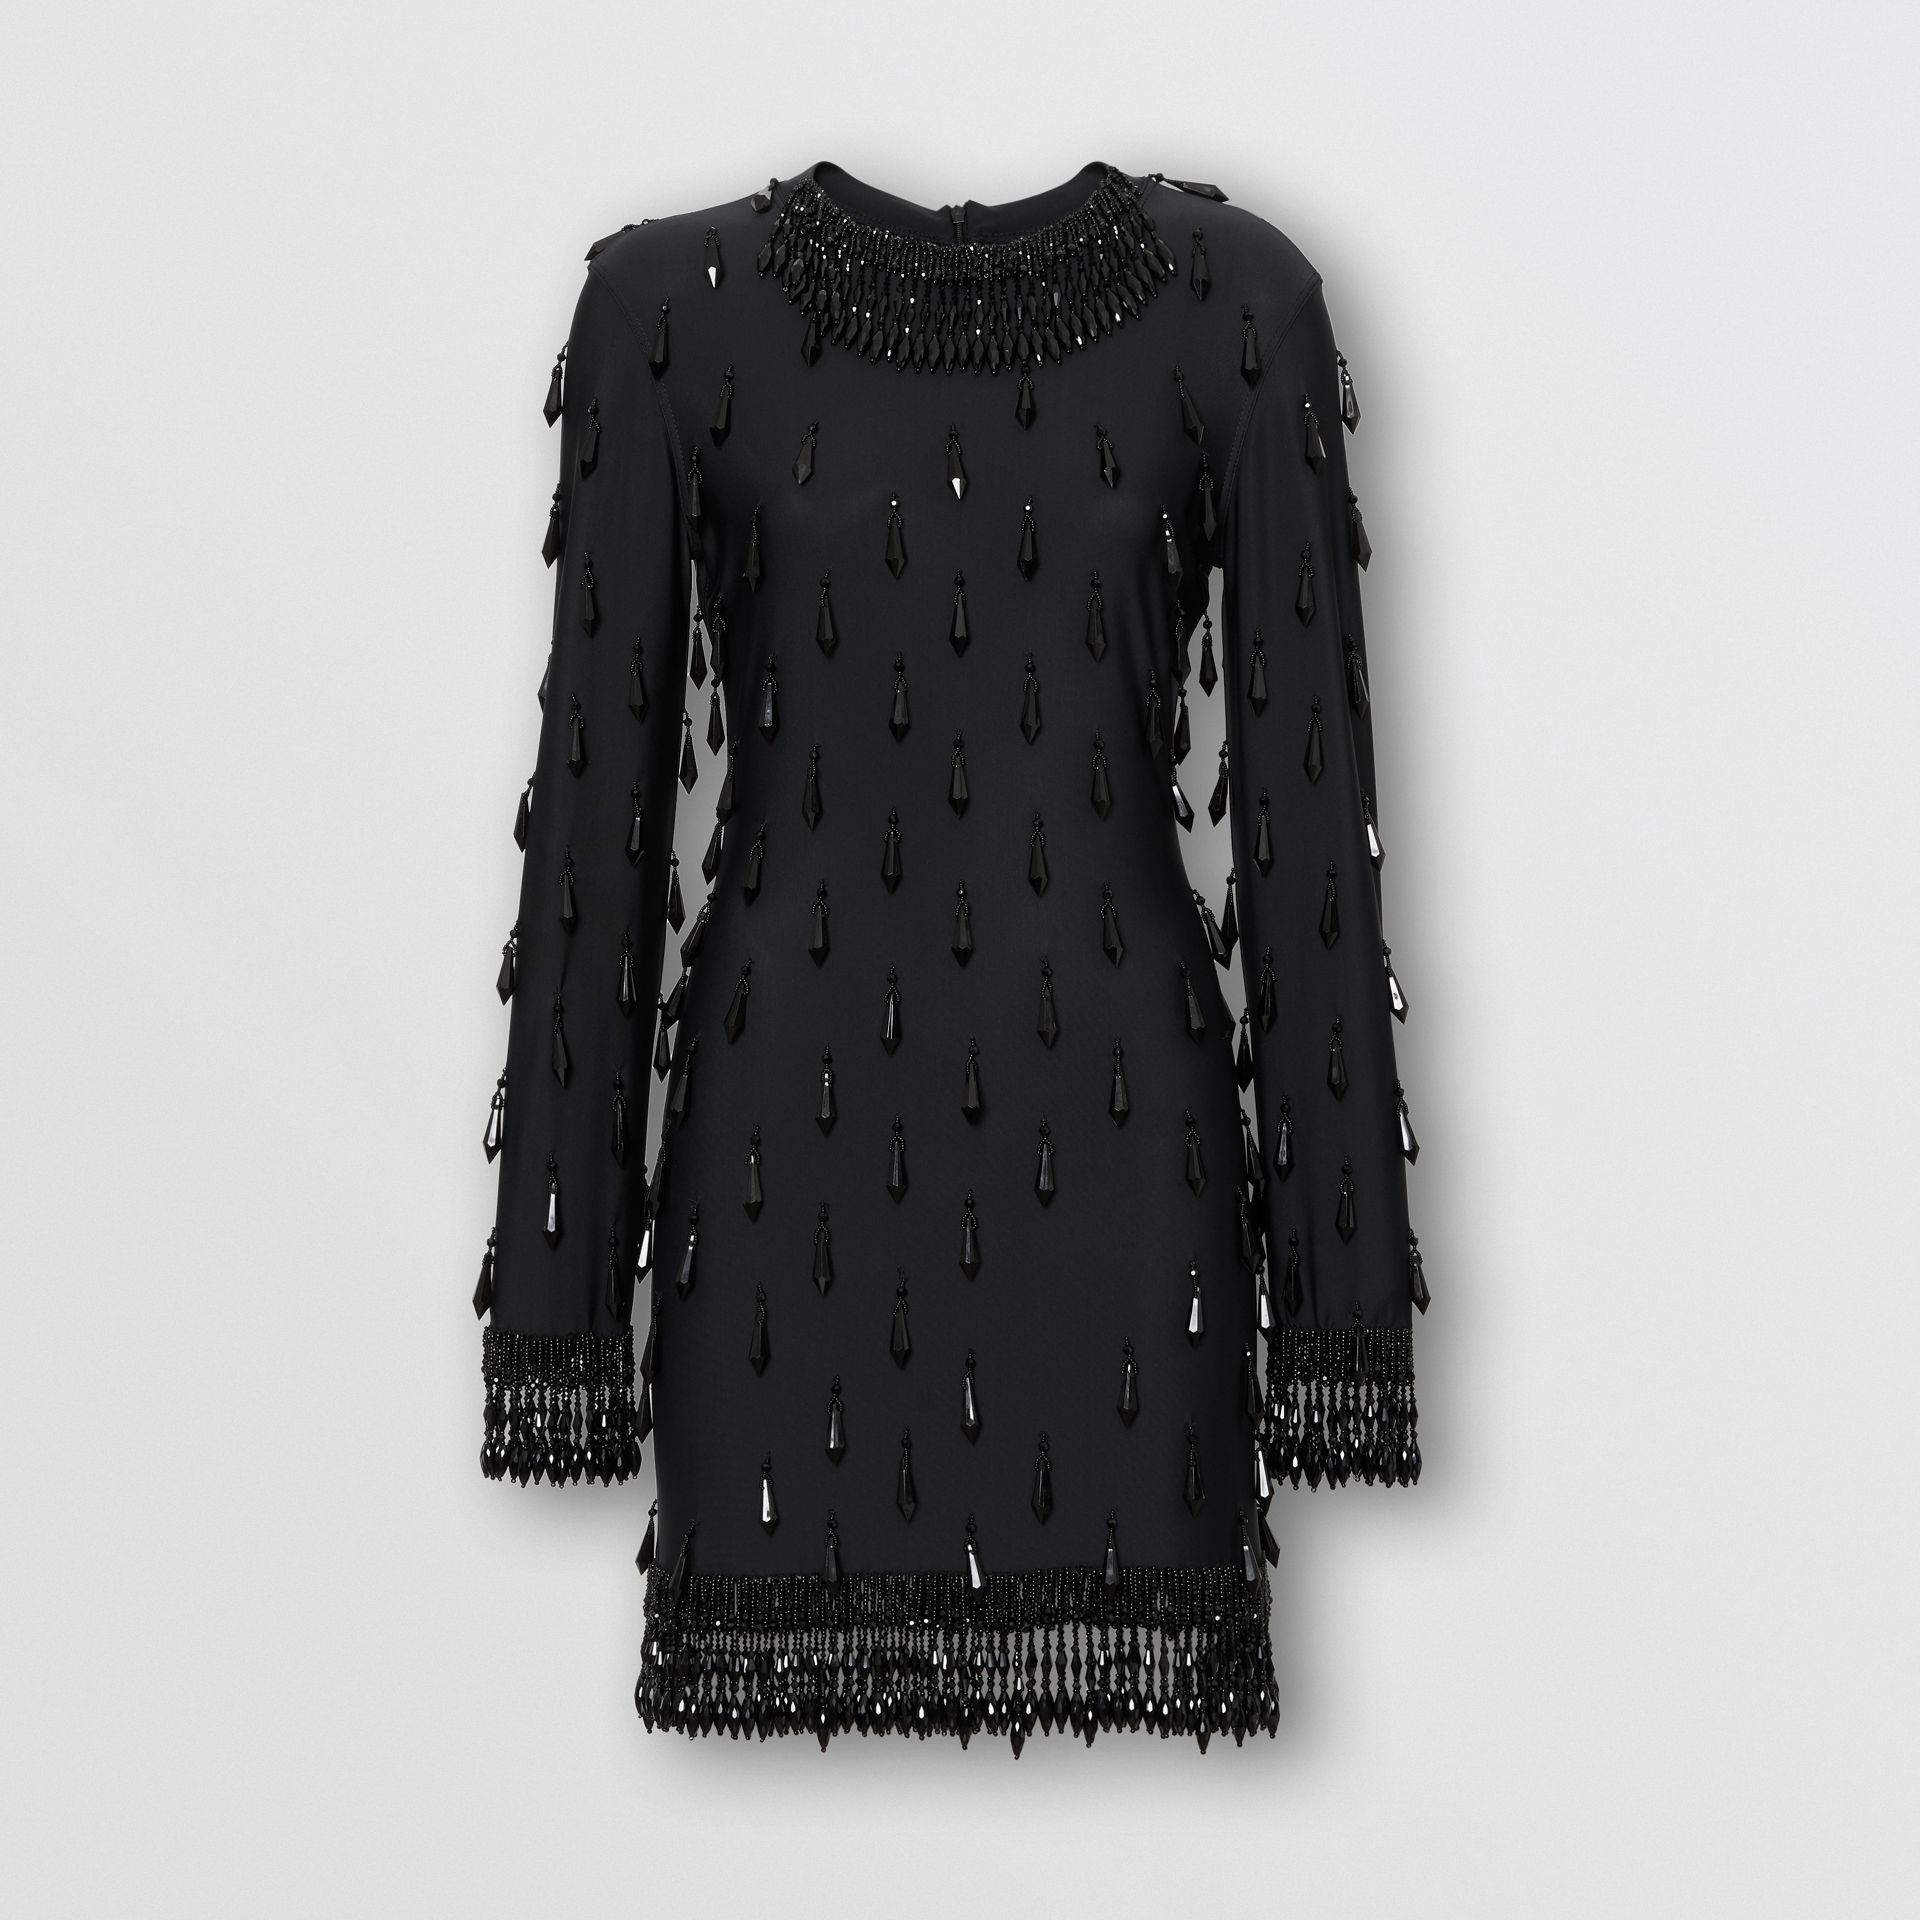 Long-sleeve Embellished Mini Dress in Black - Women | Burberry Hong Kong - gallery image 3